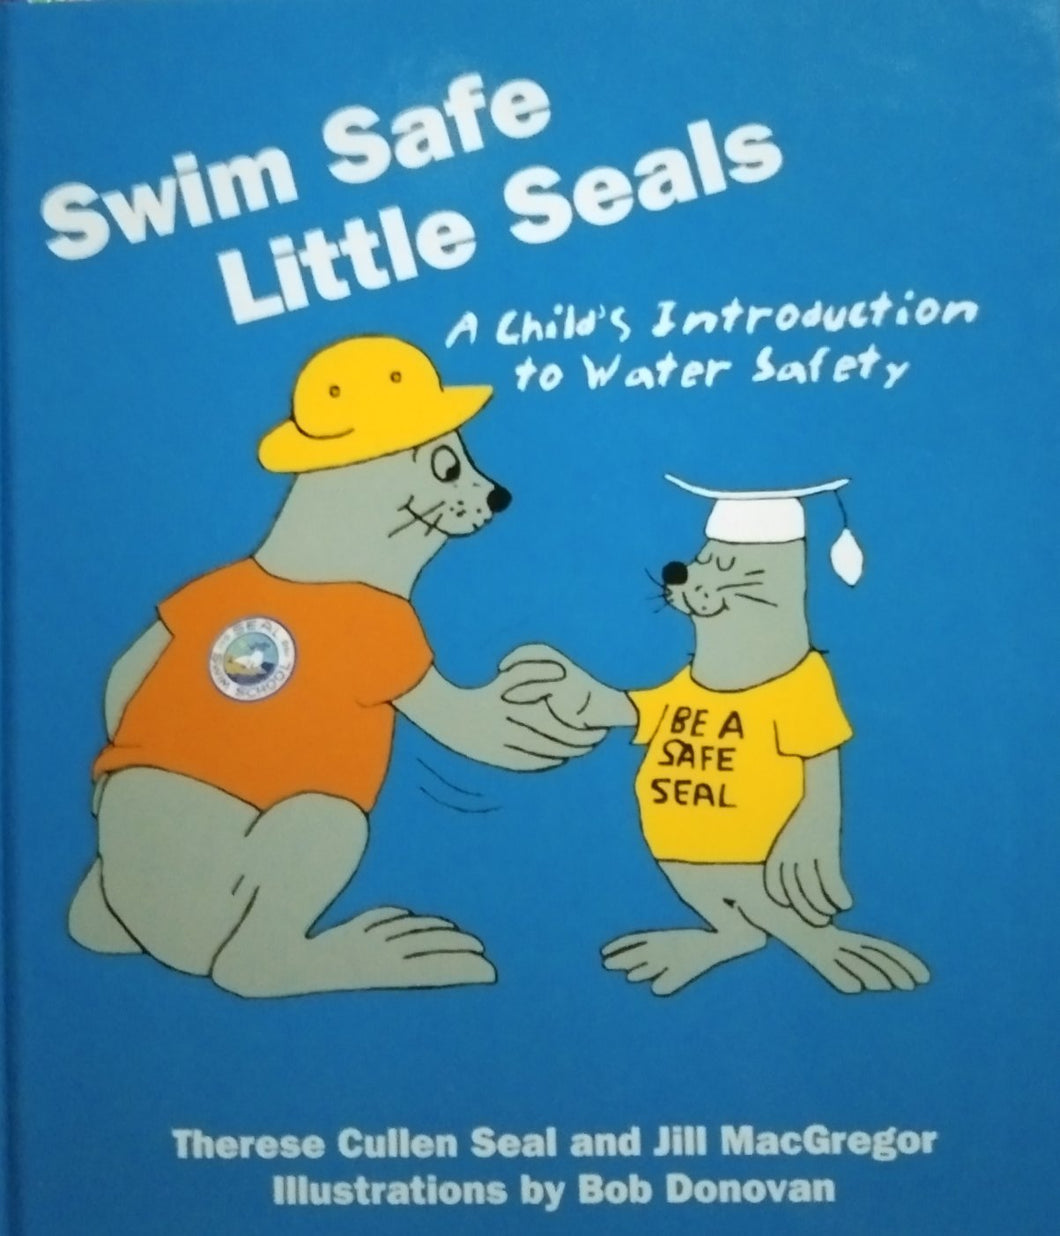 Swim safe little seal by bob donovan